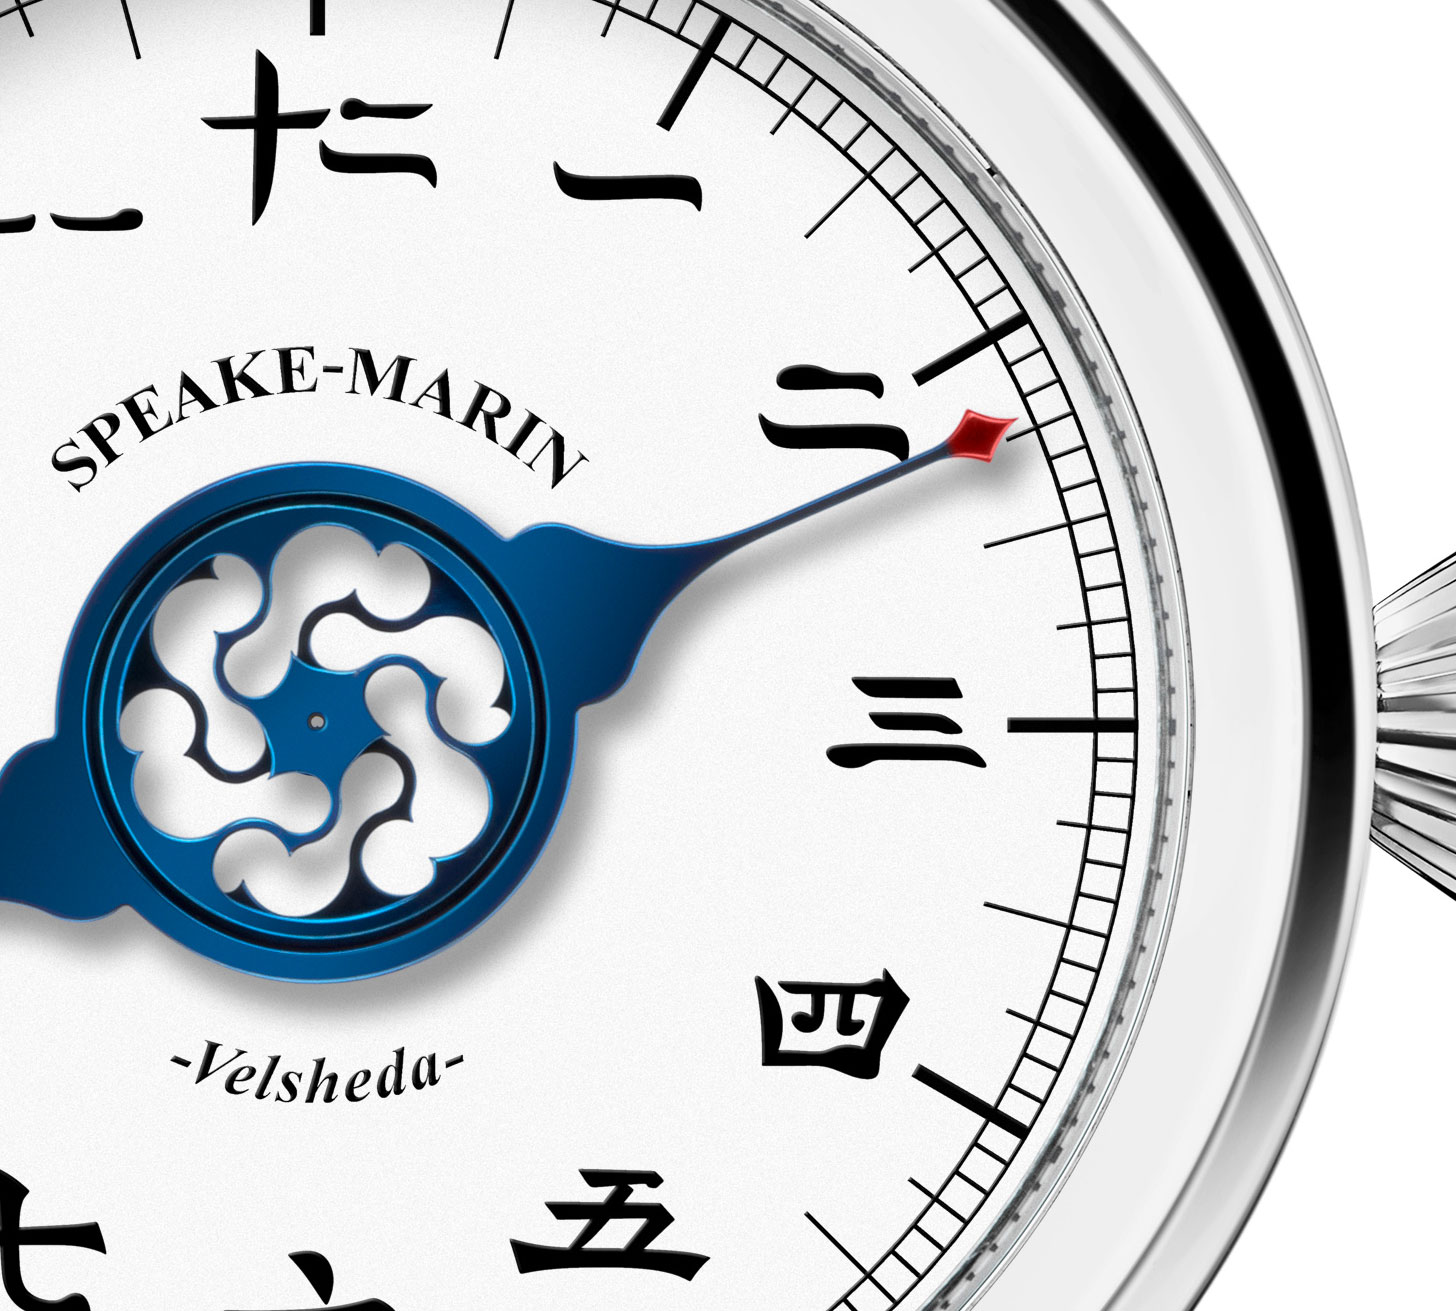 Speake-Marin Veshelda Chinese 2